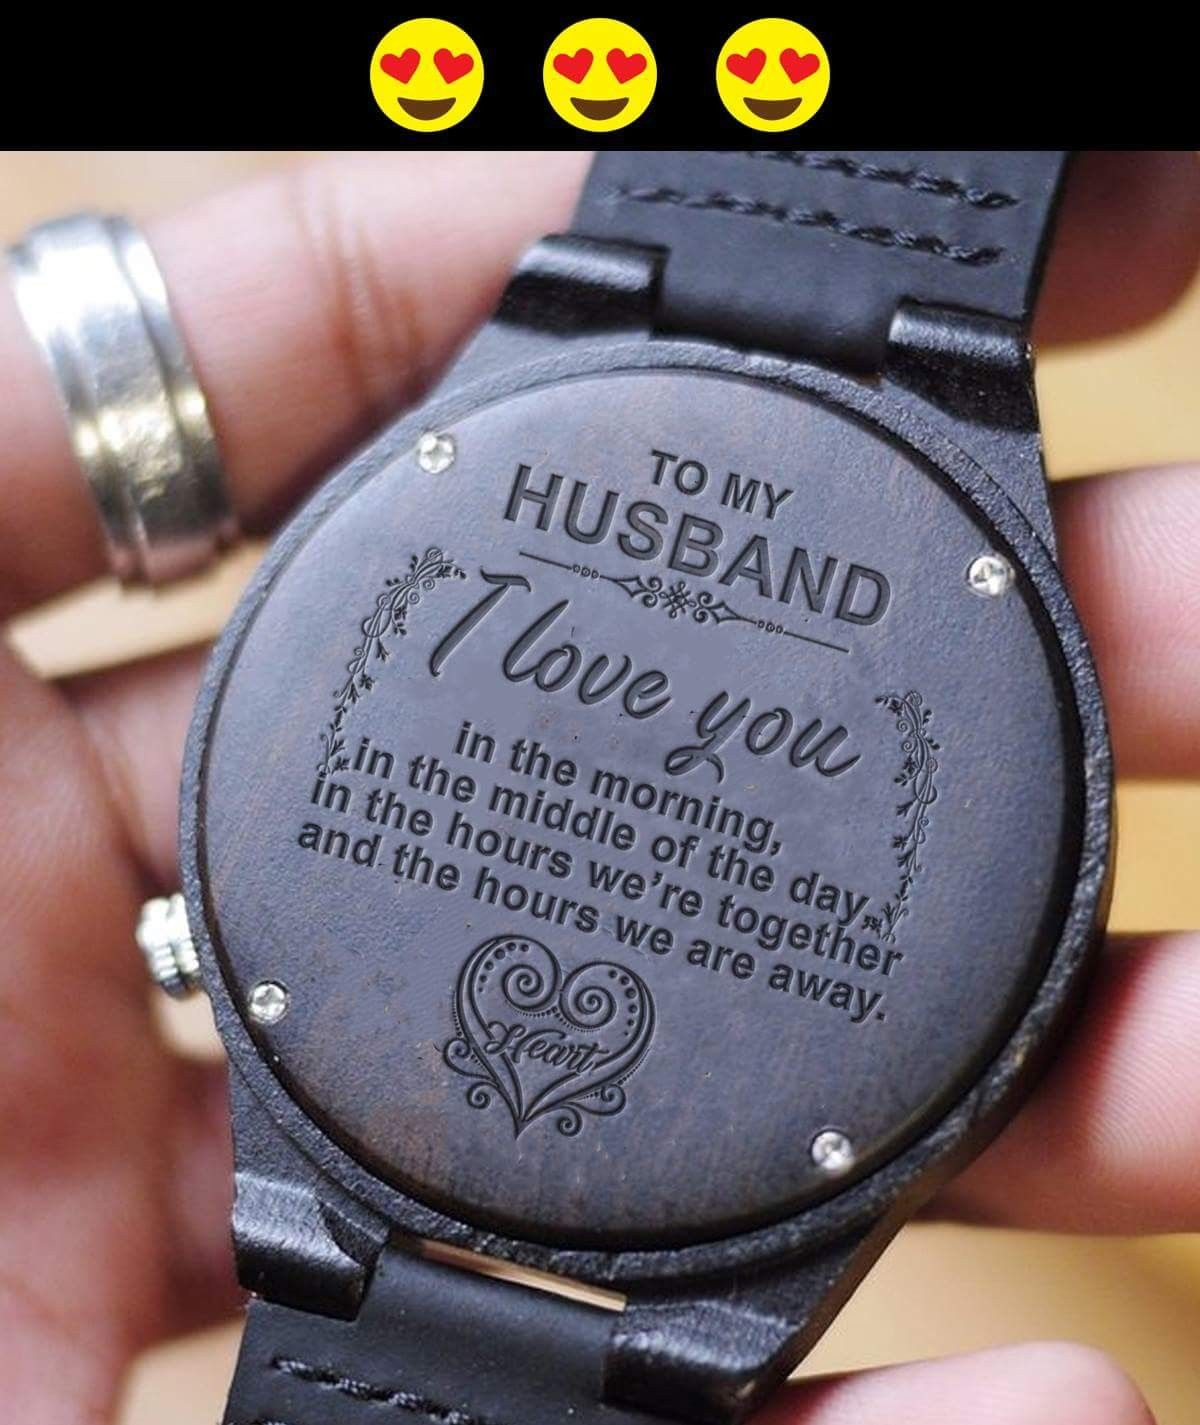 Gonna Give This To My Boyfriend Cuz He Loves Watches. Just